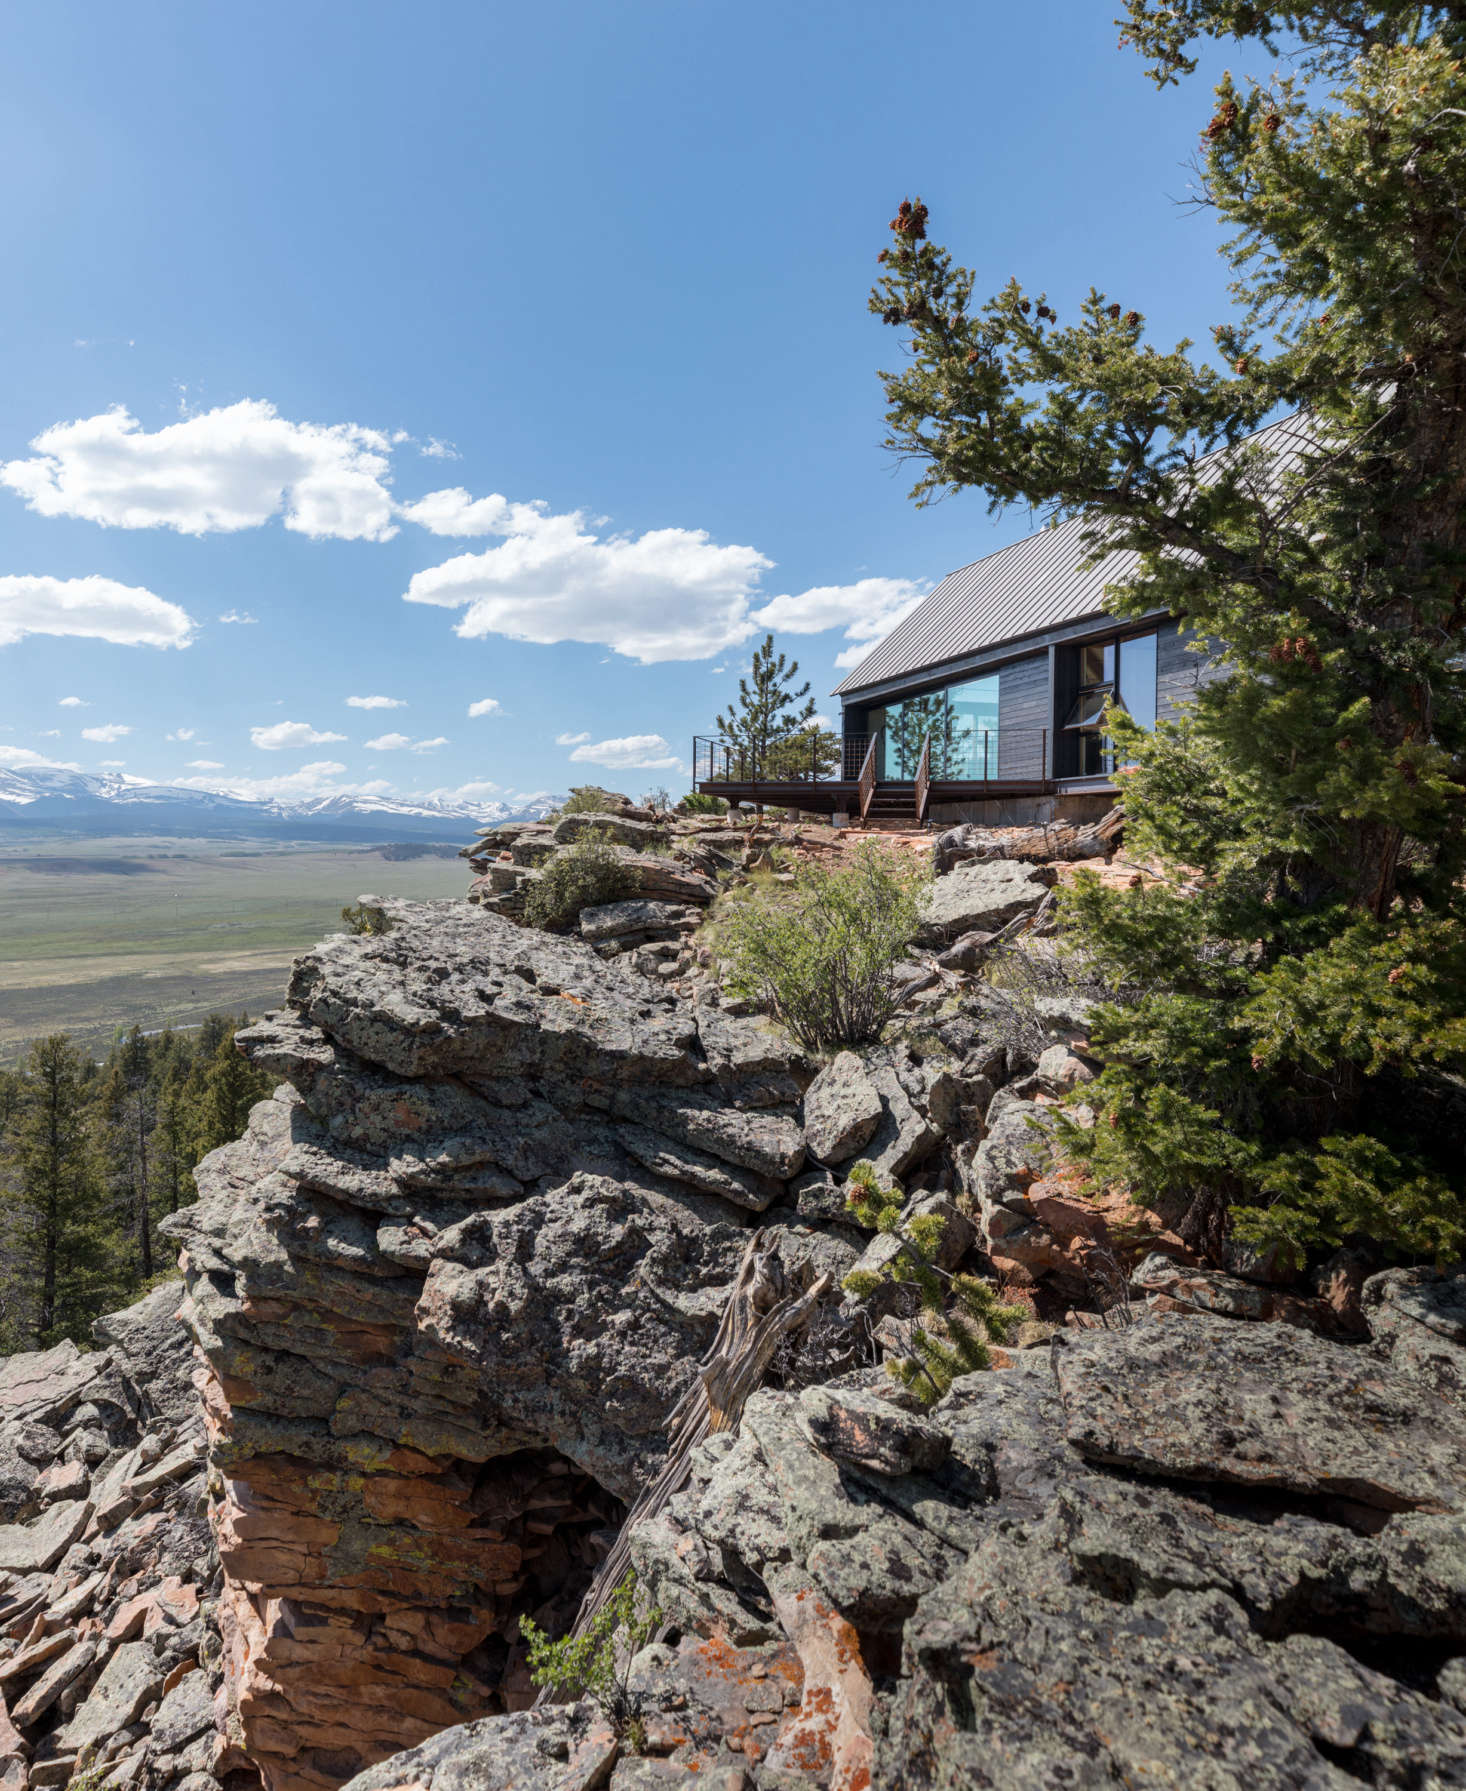 """Maricel's design brief was """"I want to feel as if I'm perched out on that cliff."""" Del Gaudio complied: situated over the South Platt River, the main house faces due south looking out to the Sangre de Cristo Mountains and Collegiate Peaks of the Rockies."""